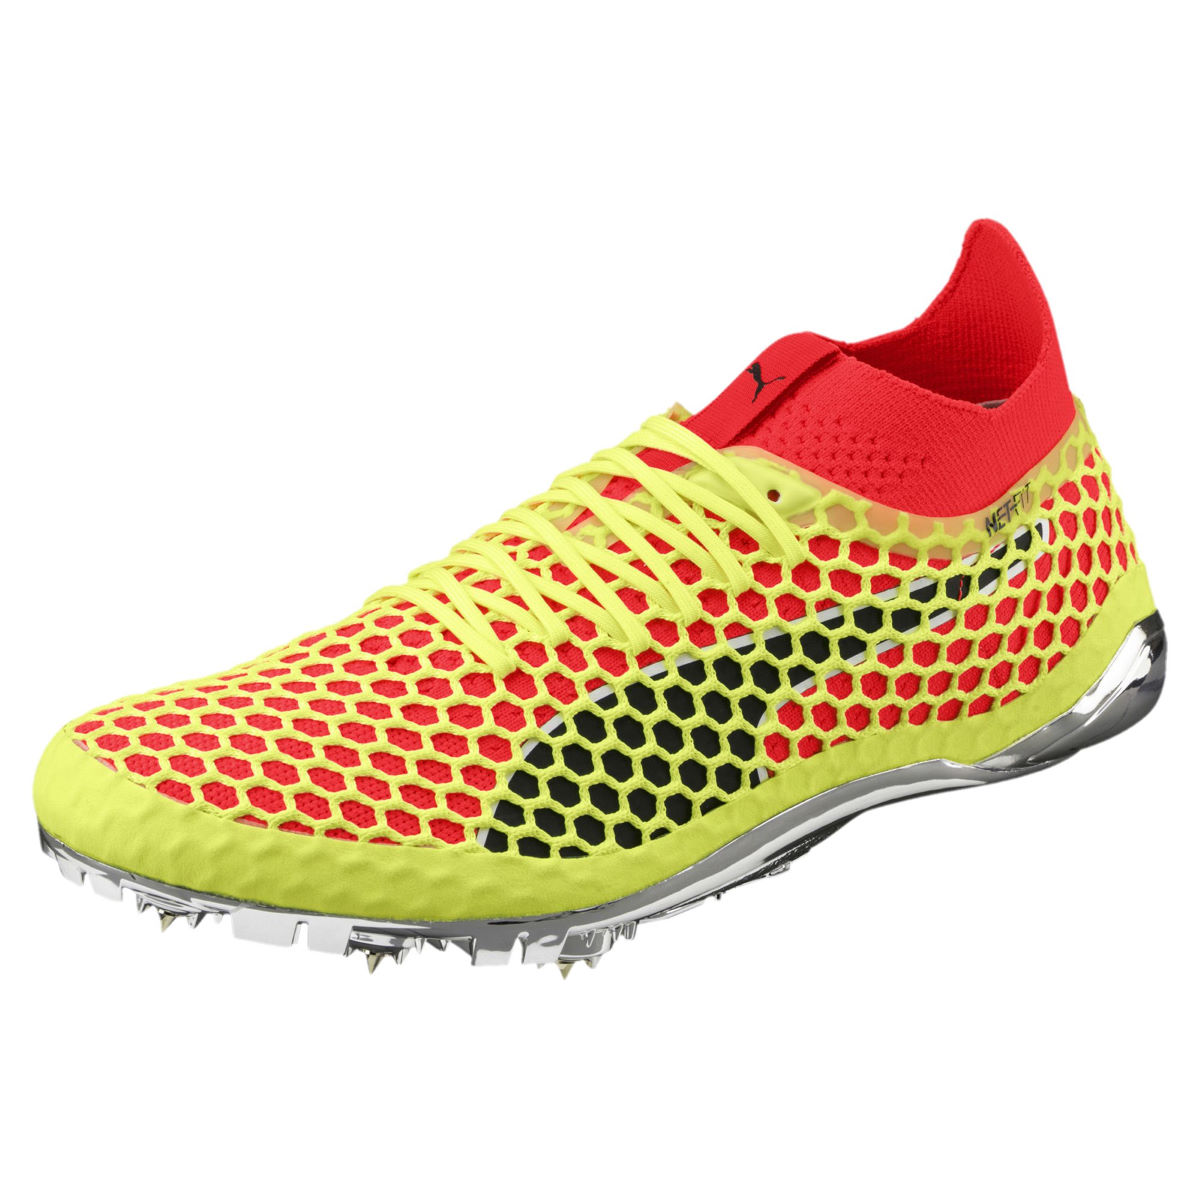 Zapatillas Puma EvoSPEED Netfit Sprint - Zapatillas de atletismo